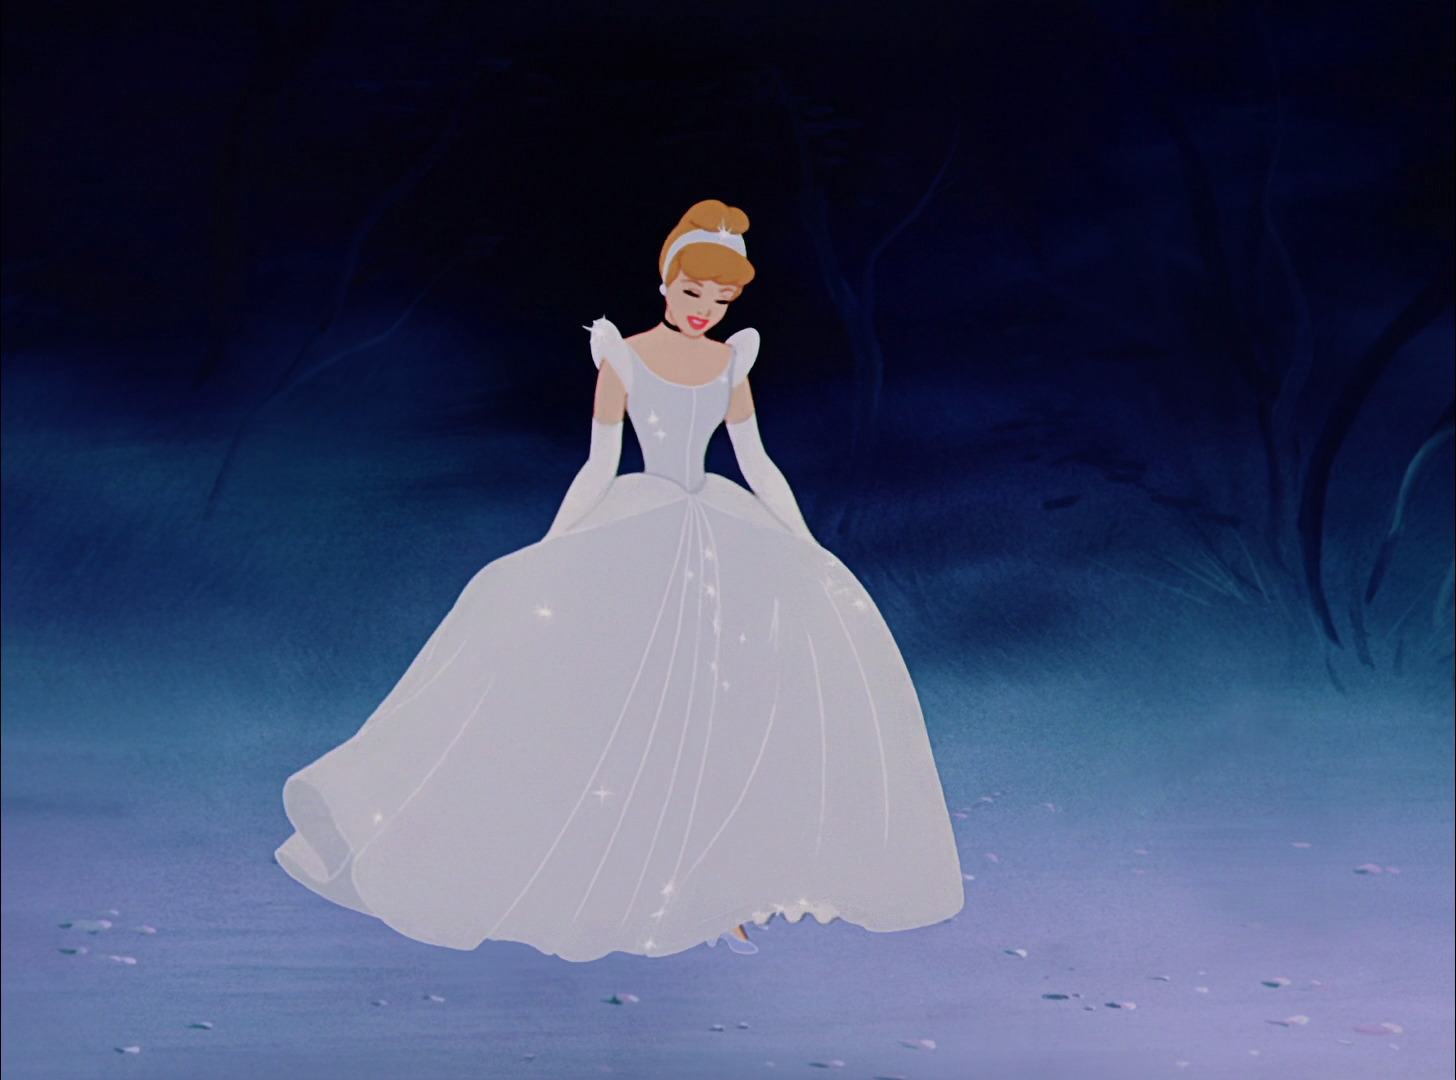 disney princess historical influences cinderella part 2 cinderella wedding dress costume cinderella disneyscreencaps com